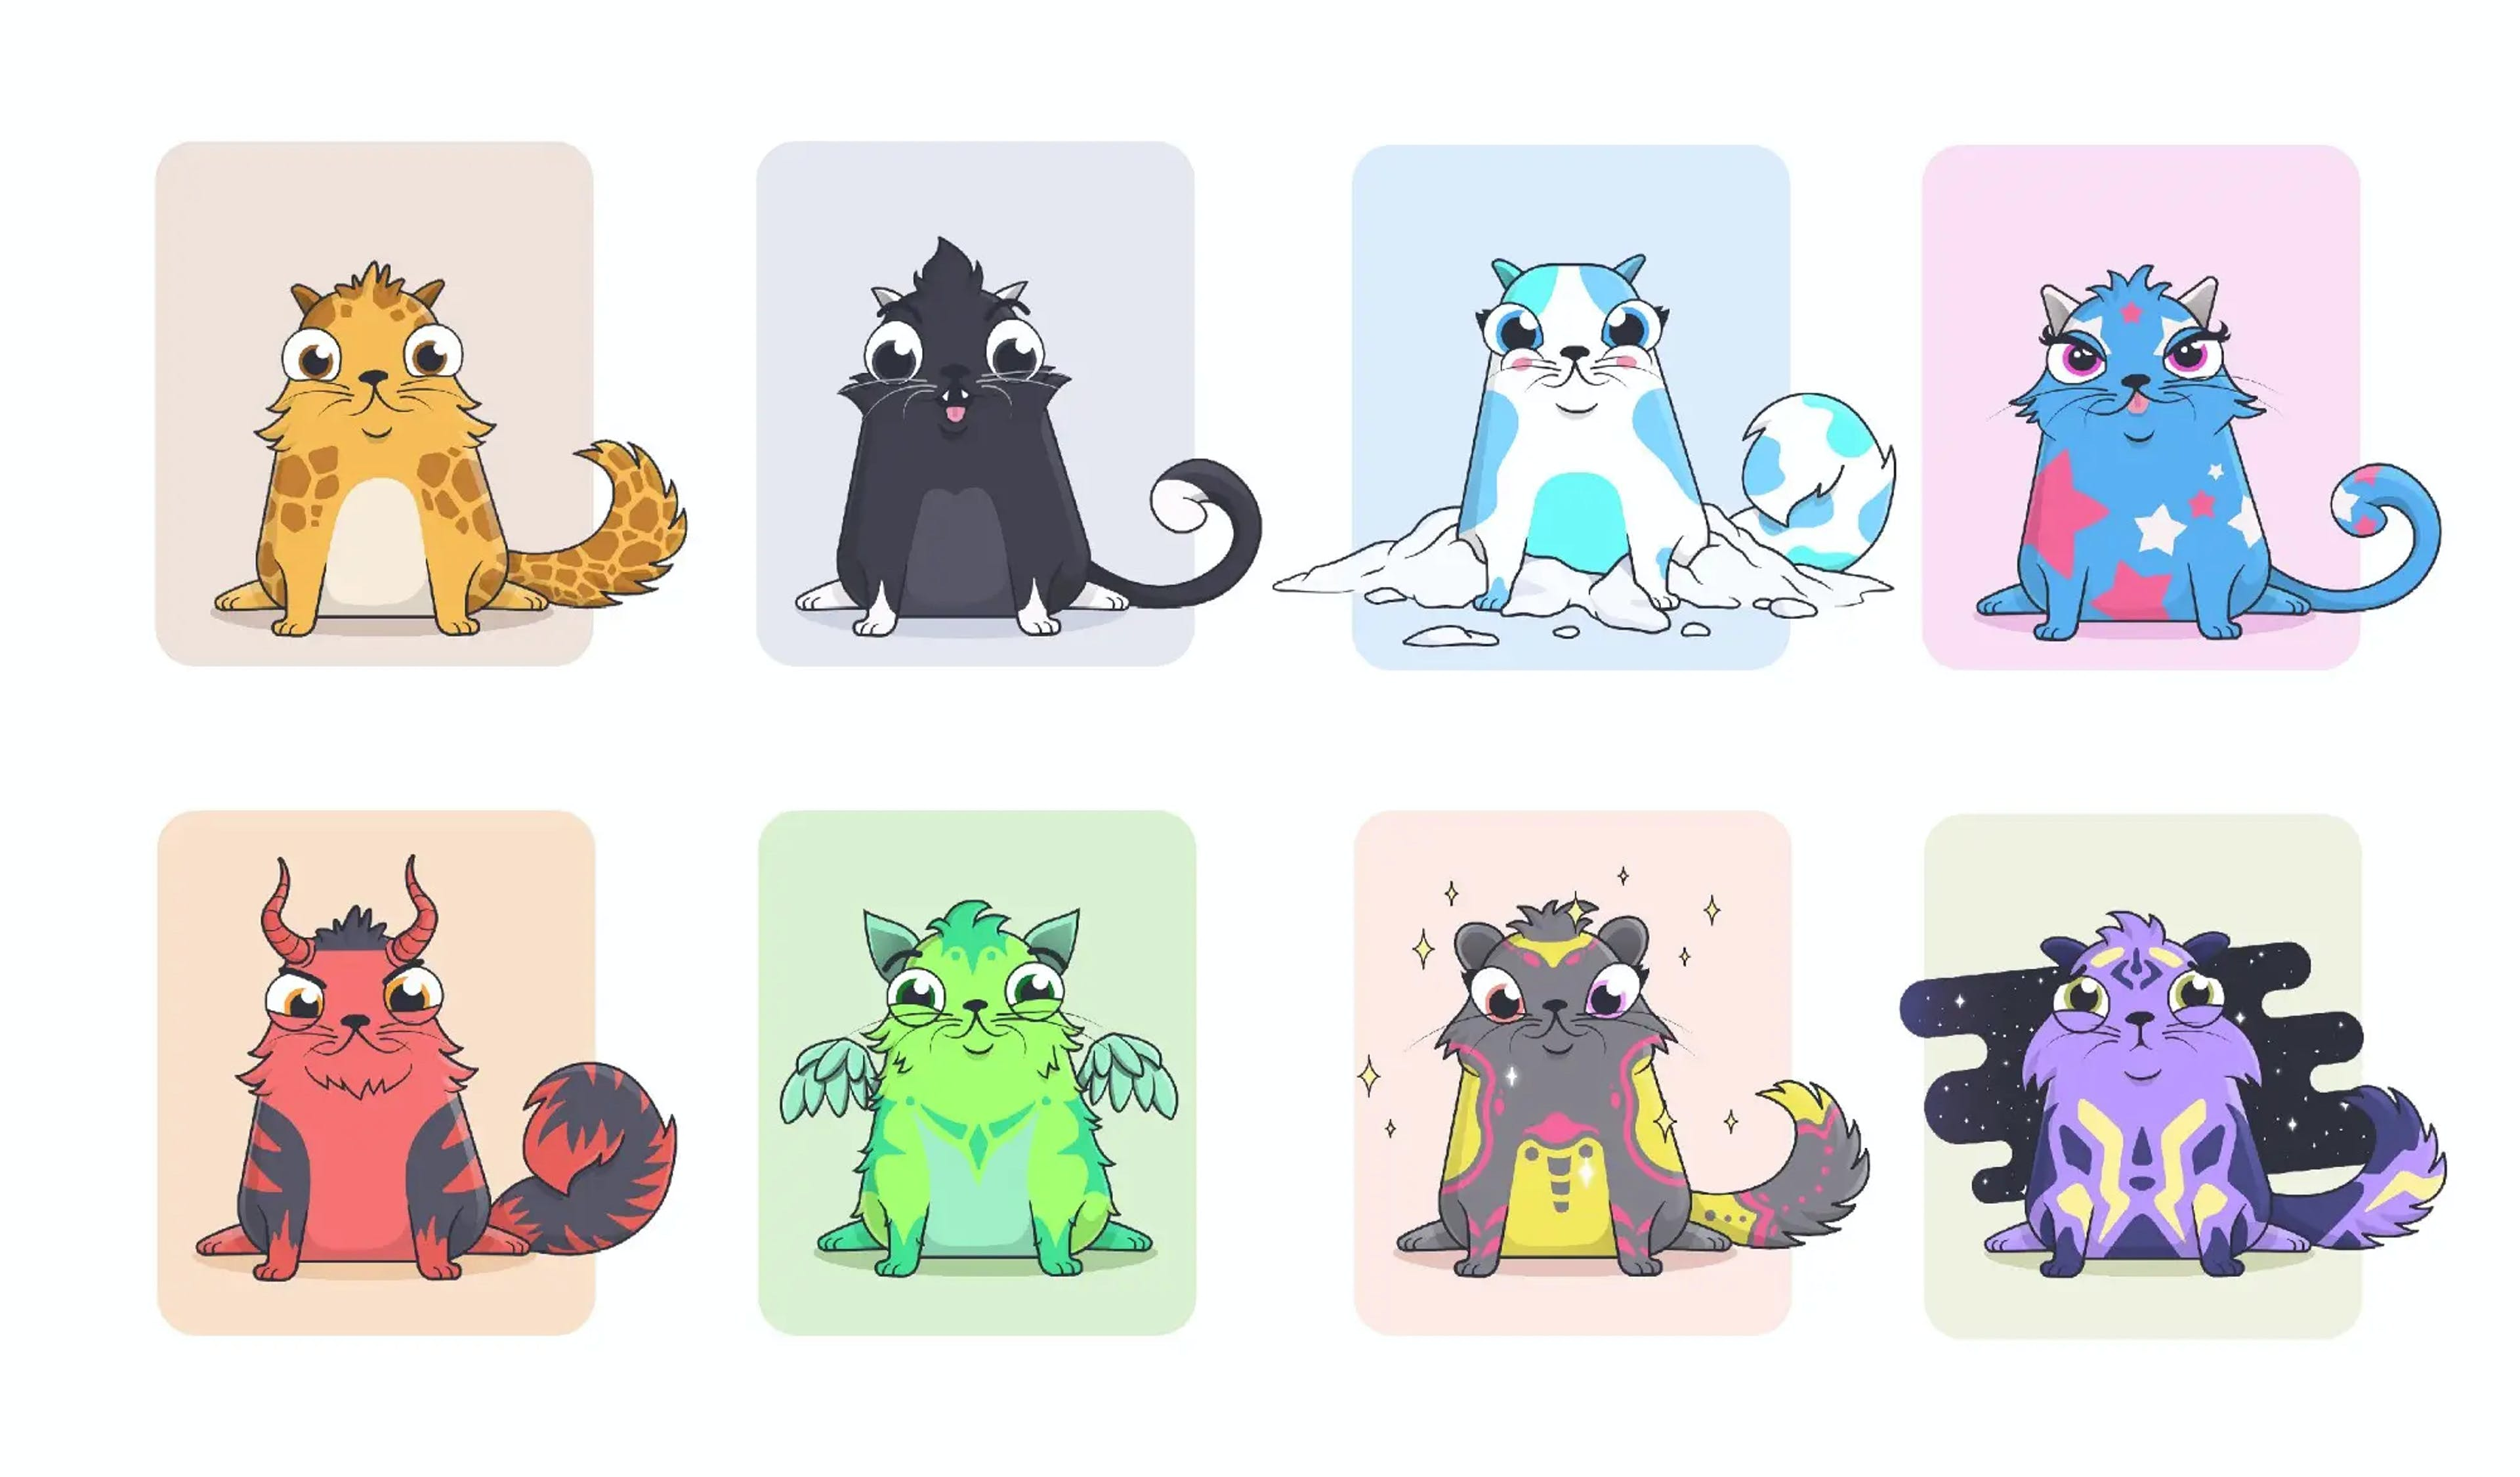 Cryptokitties — one of the first NFT projects, 2017